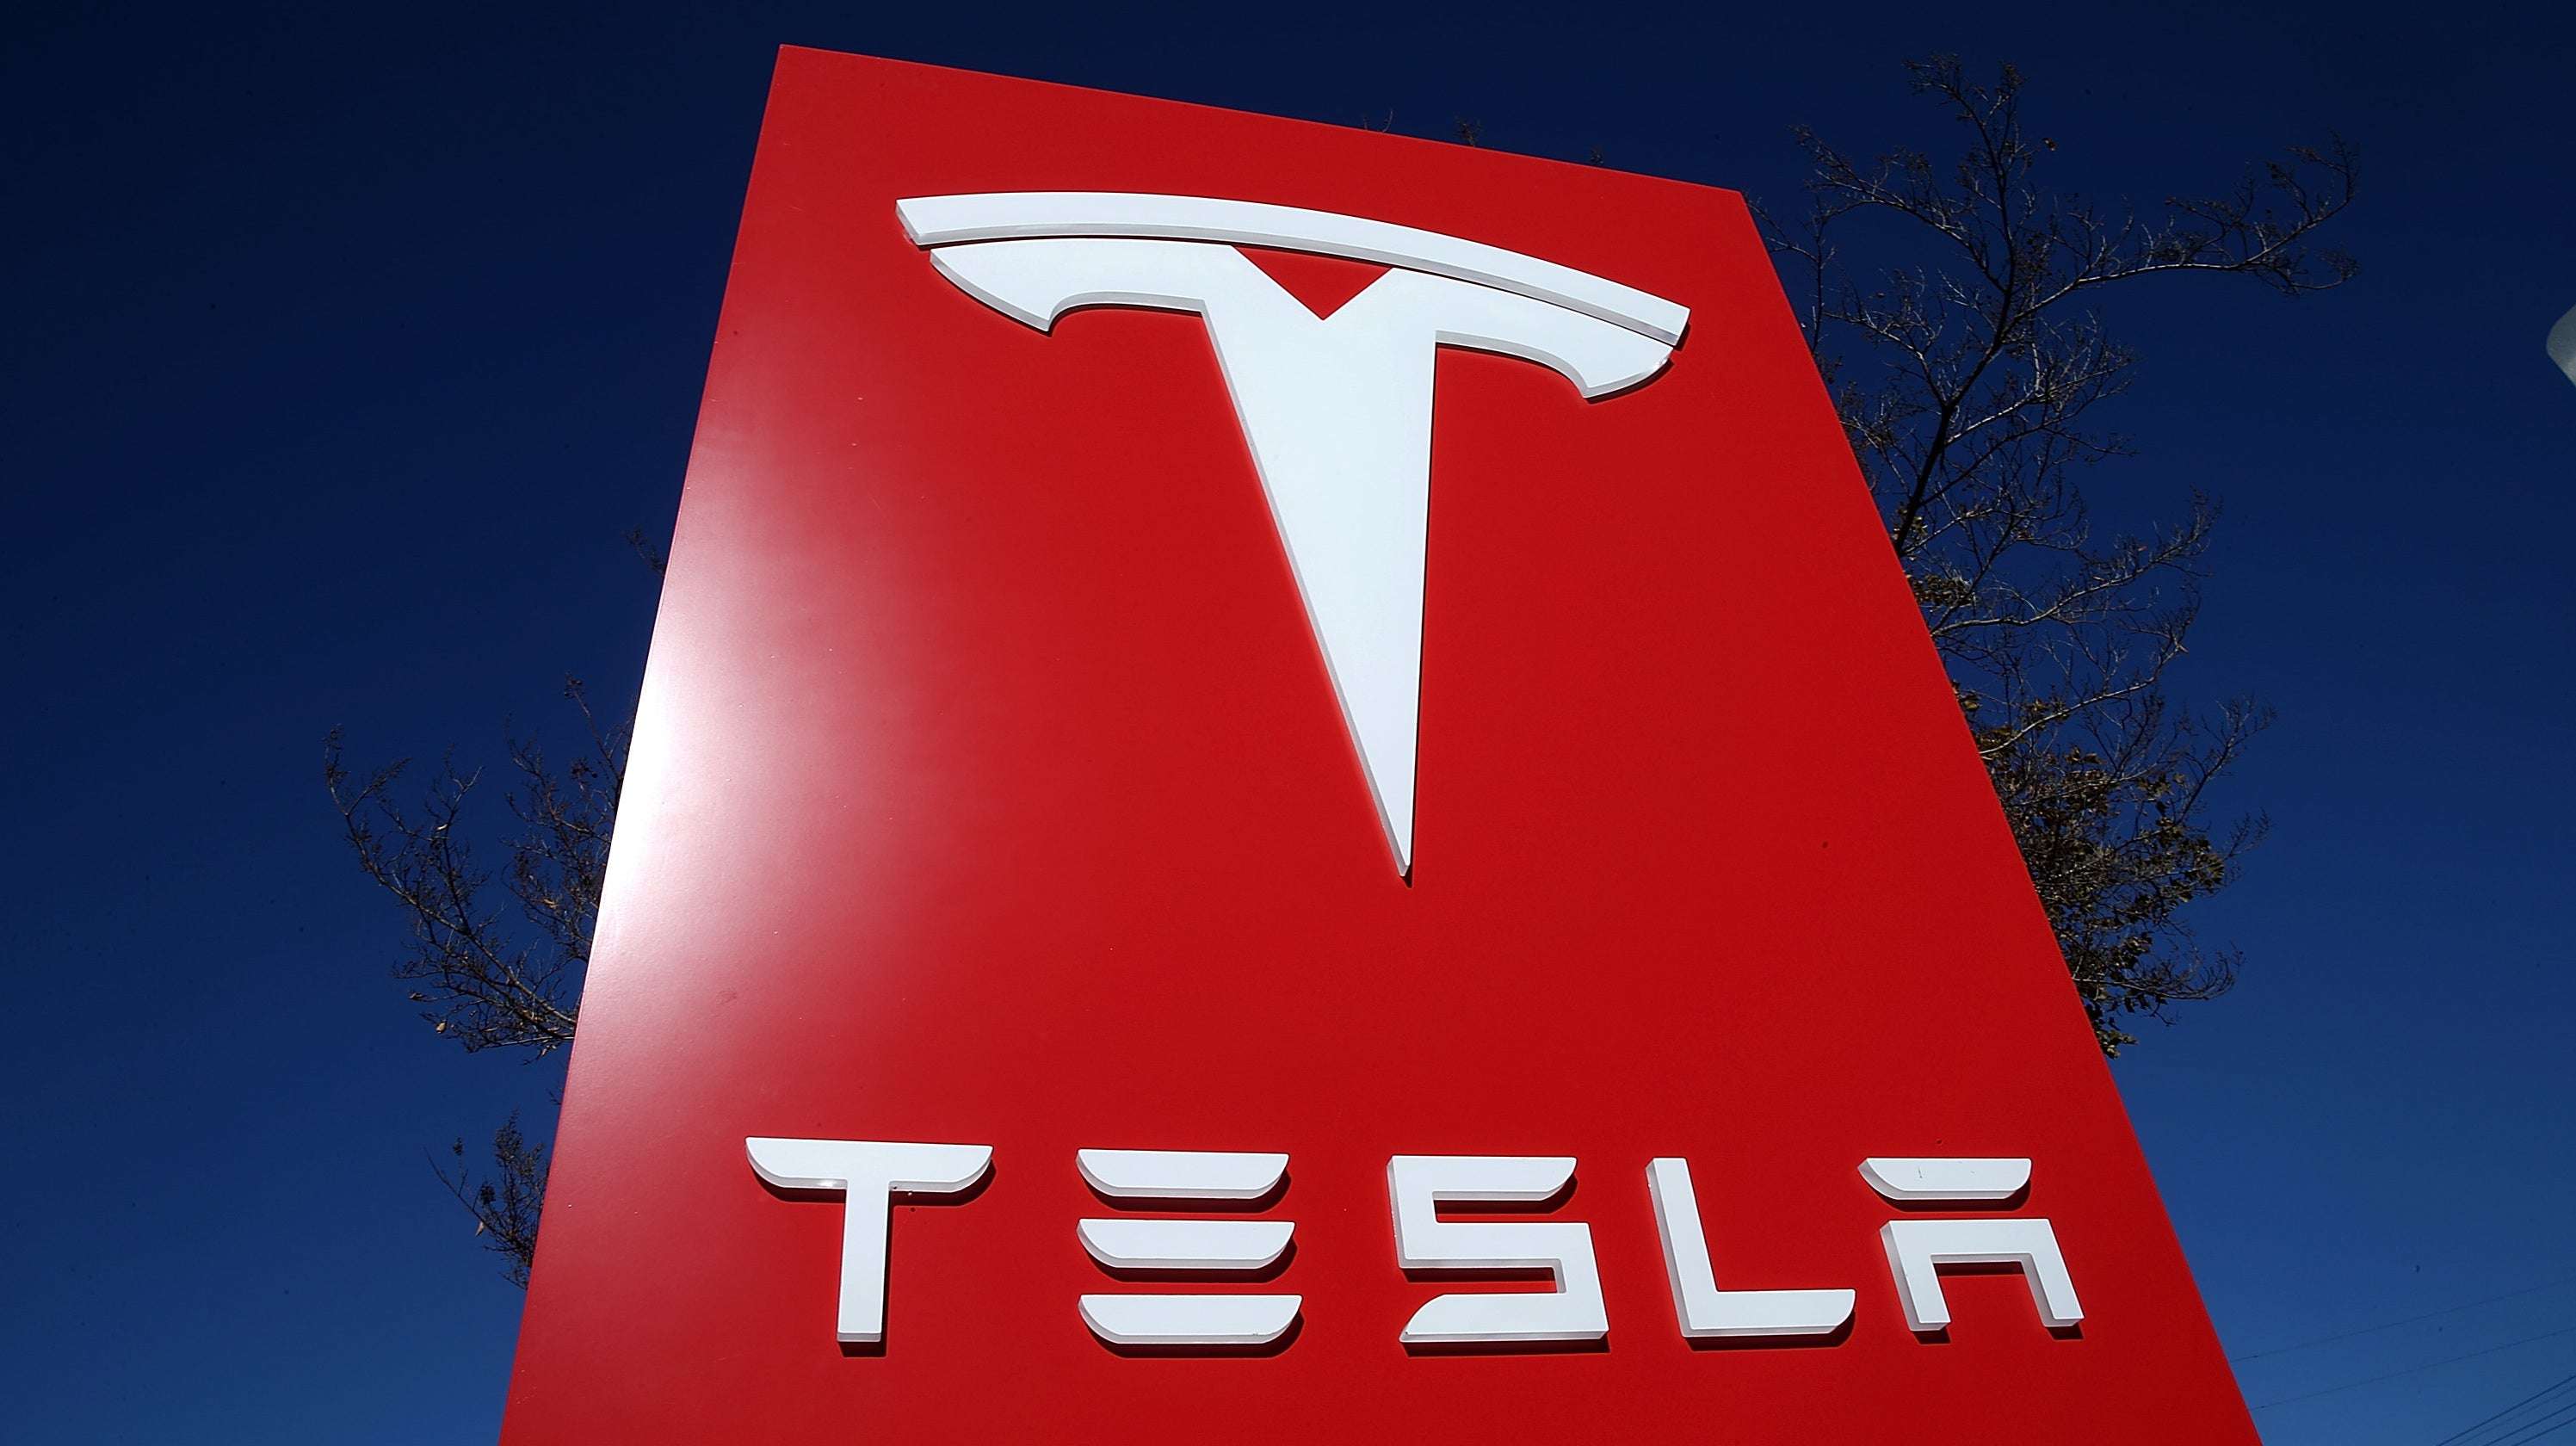 Tesla's Alleged 'Saboteur' Files $1.3 Million Defamation Suit Against Automaker